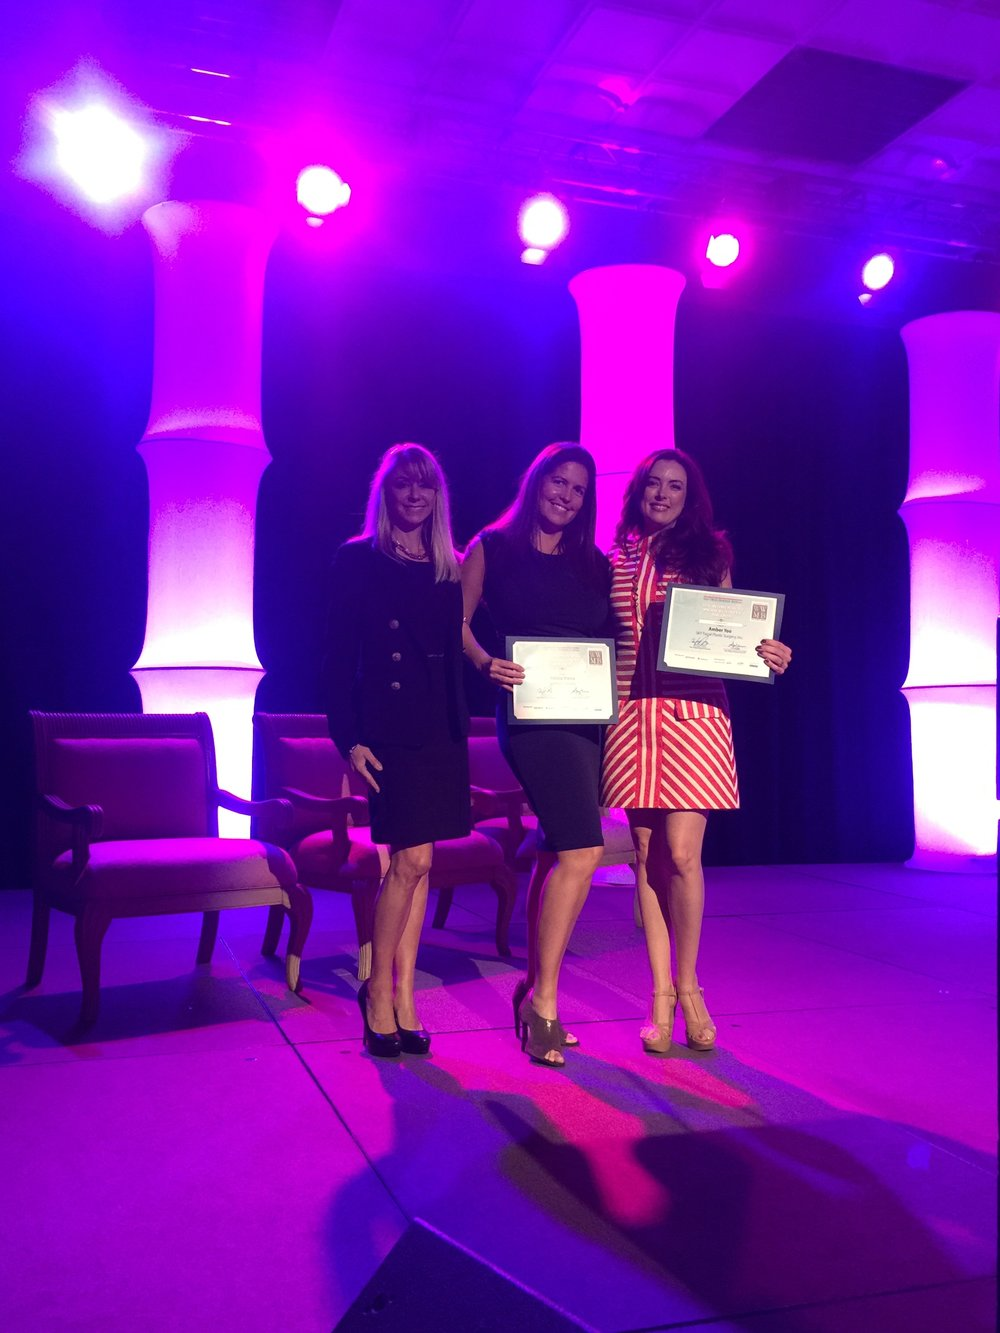 SKY's VP Amber N. Yoo, M.B.A. (far right) on stage at the San Diego Business Journal's Women Who Mean Business award ceremony with fellow honoree Felicia Vieria (middle), owner of Crafted Cocktails and friend.